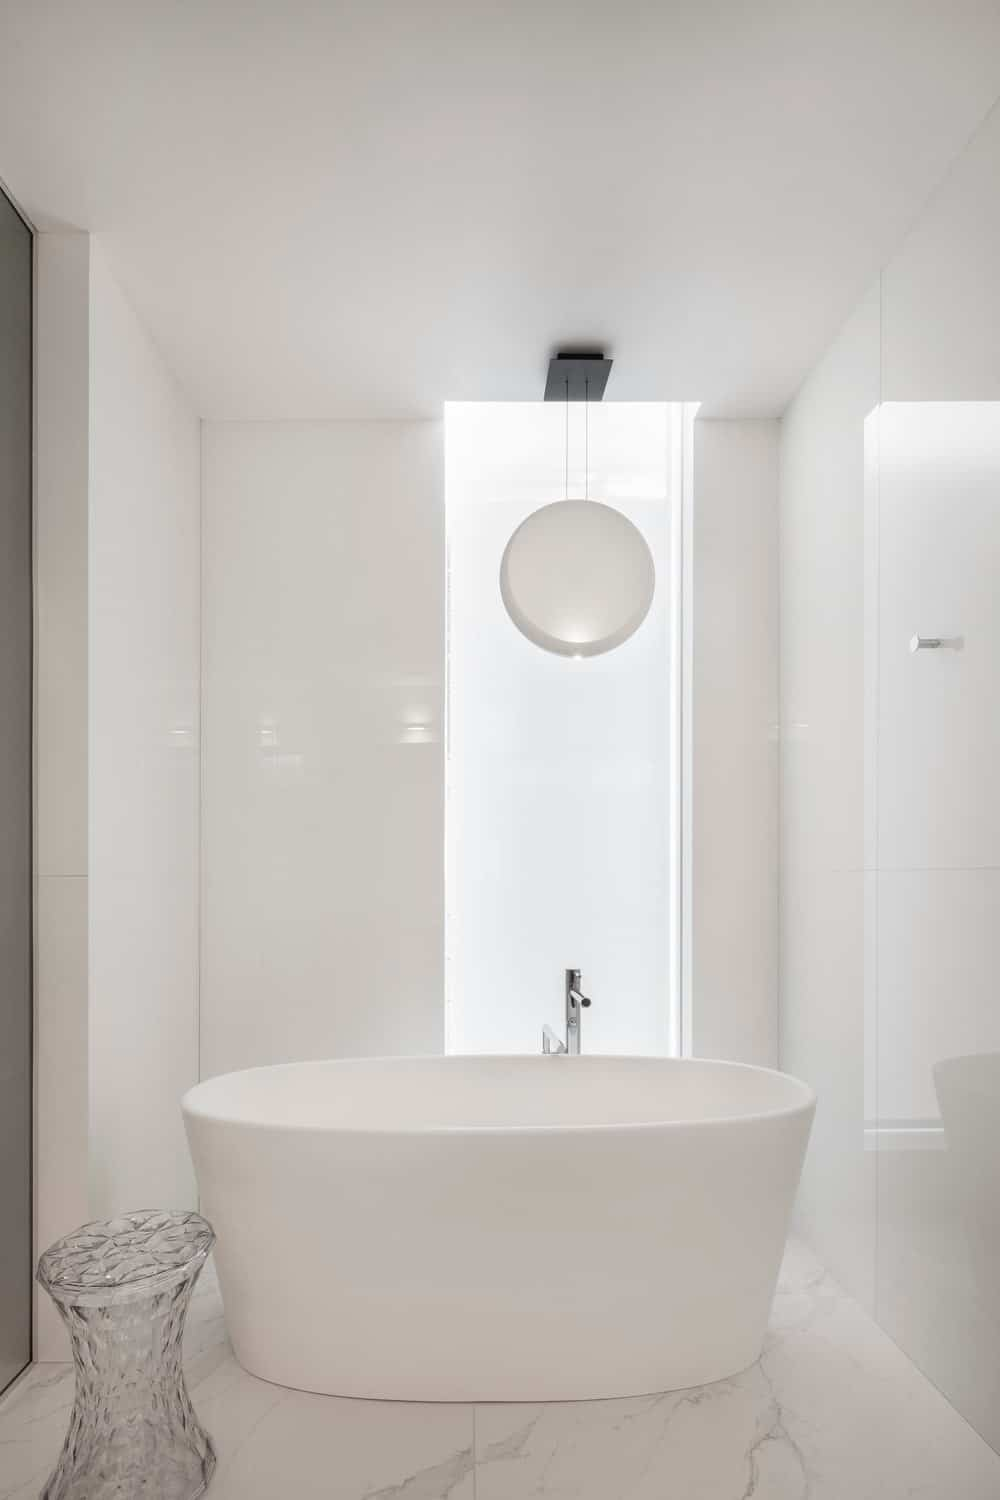 An all-white bathroom with a freestanding bathtub accompanied by a round pendant and a fancy glass stool that sits on marble tiled flooring.